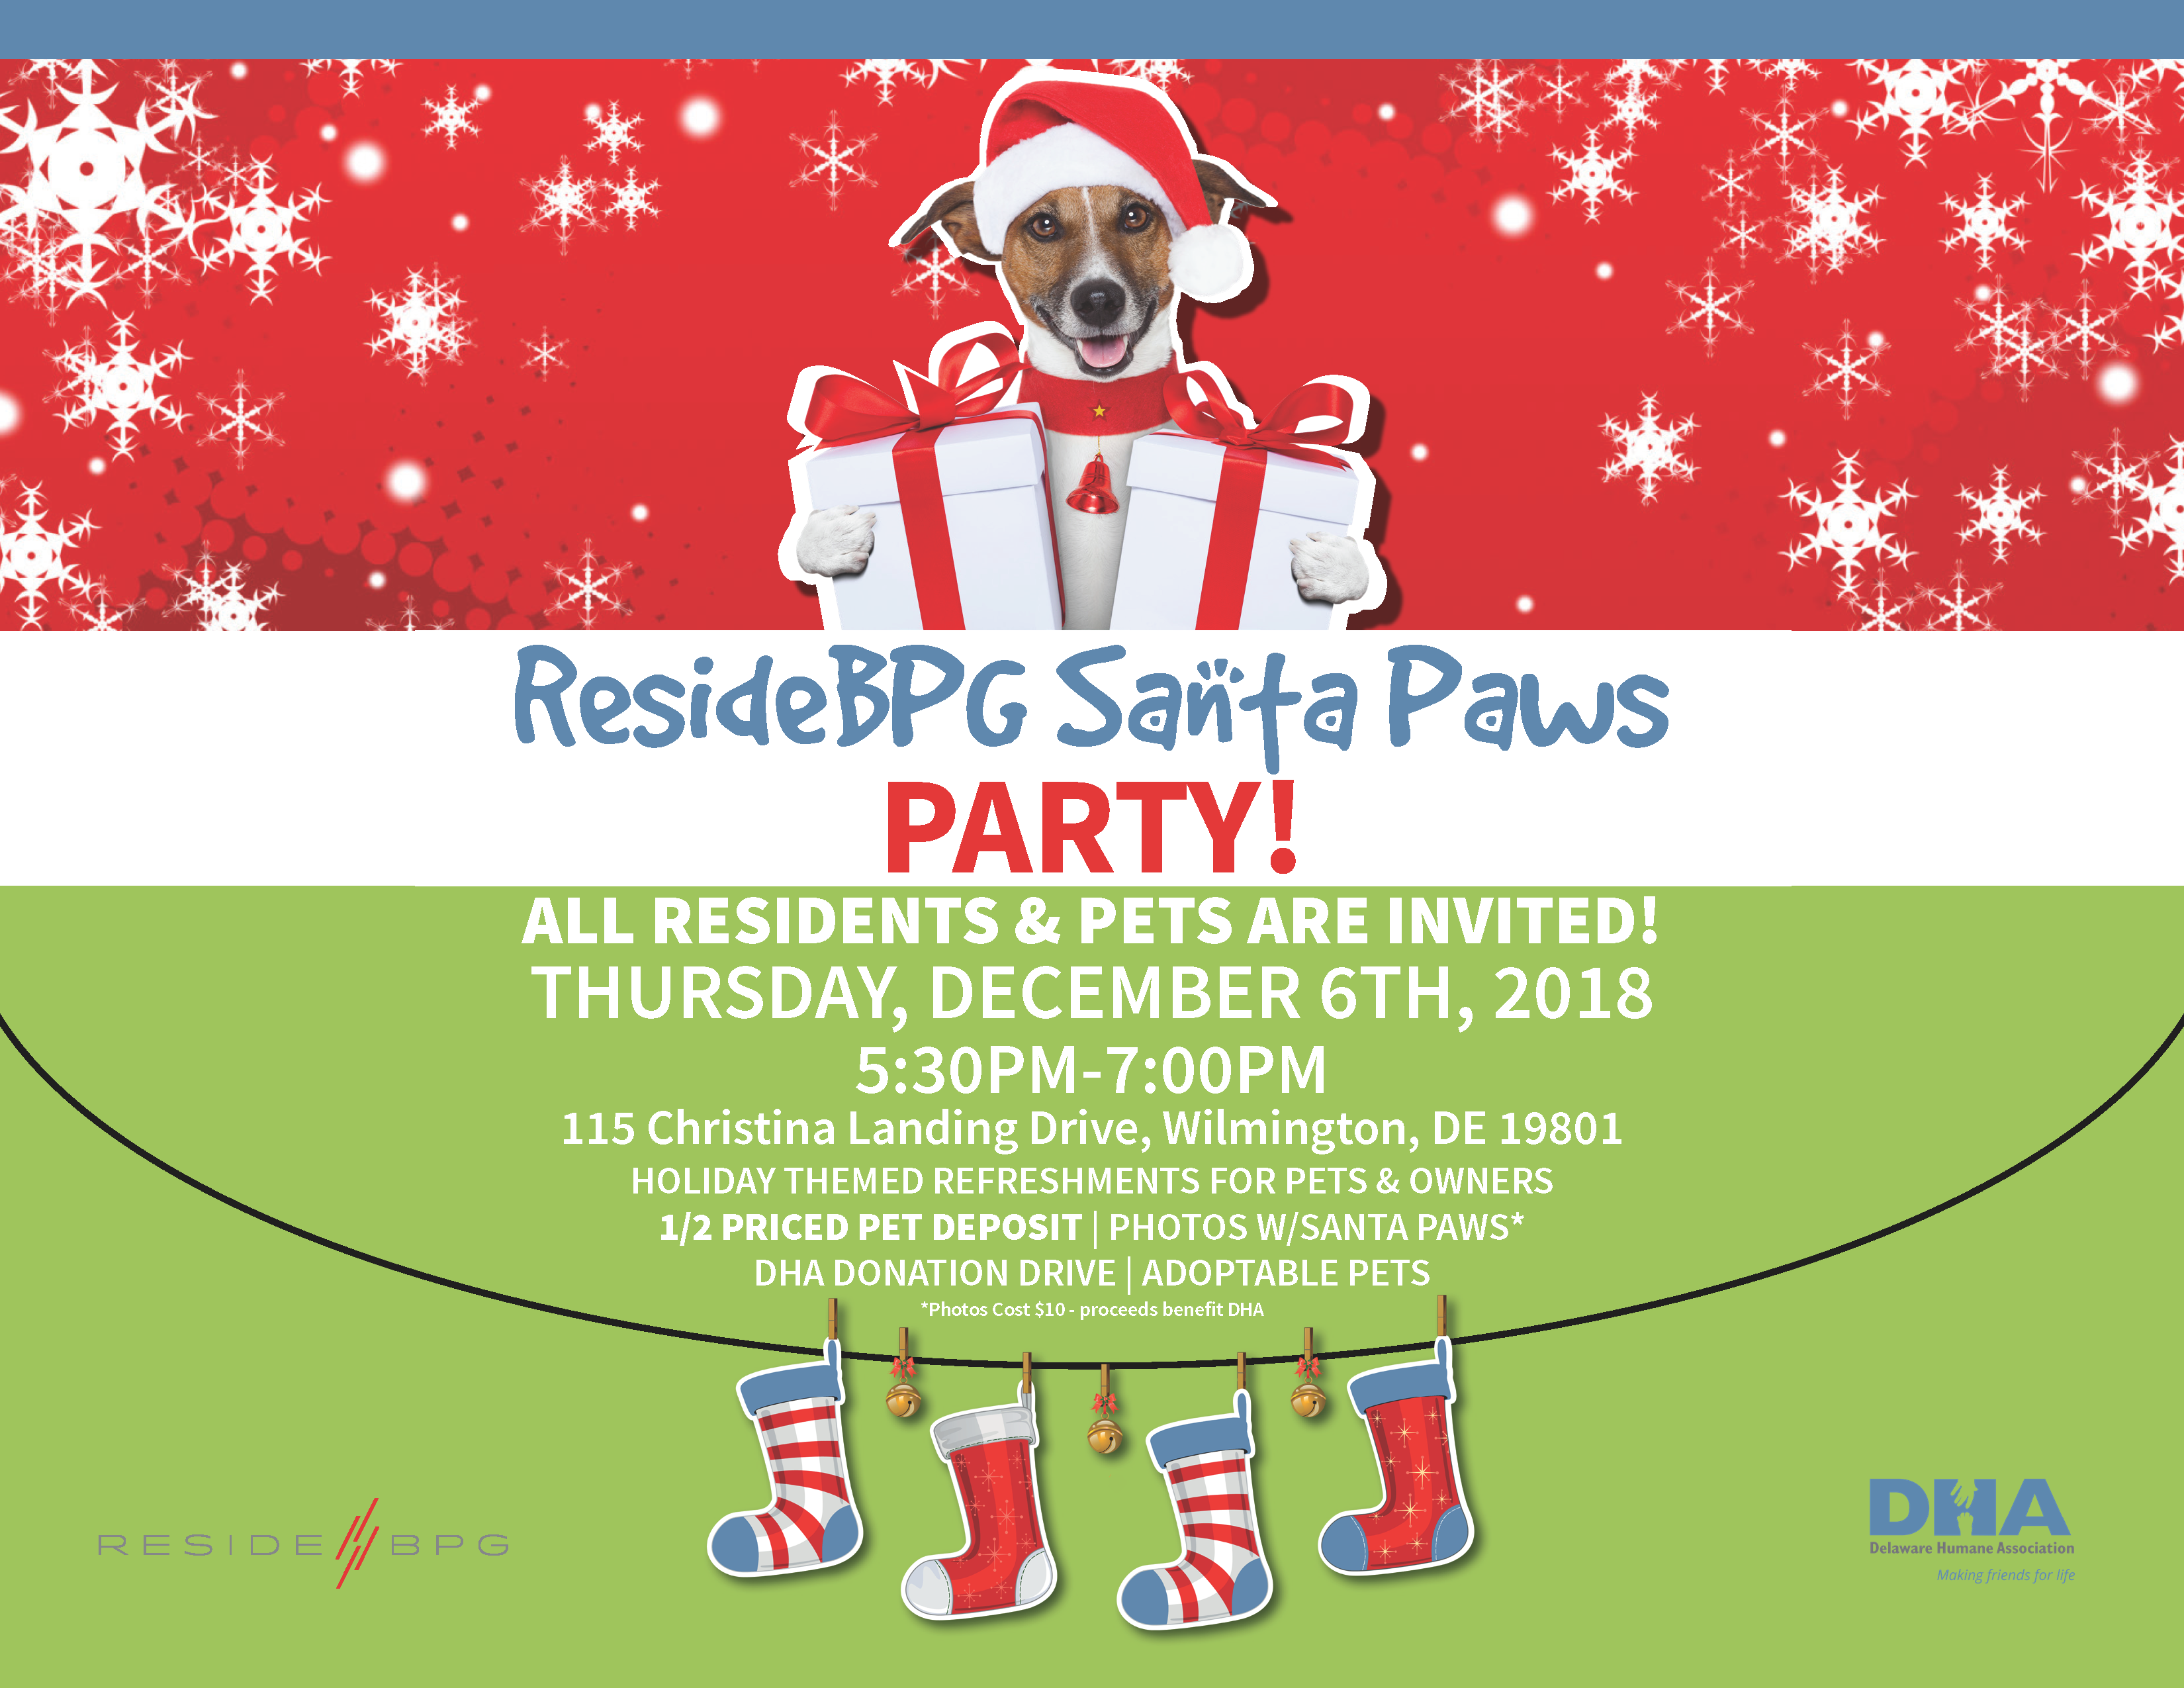 ResideBPGSantaPawsParty2018